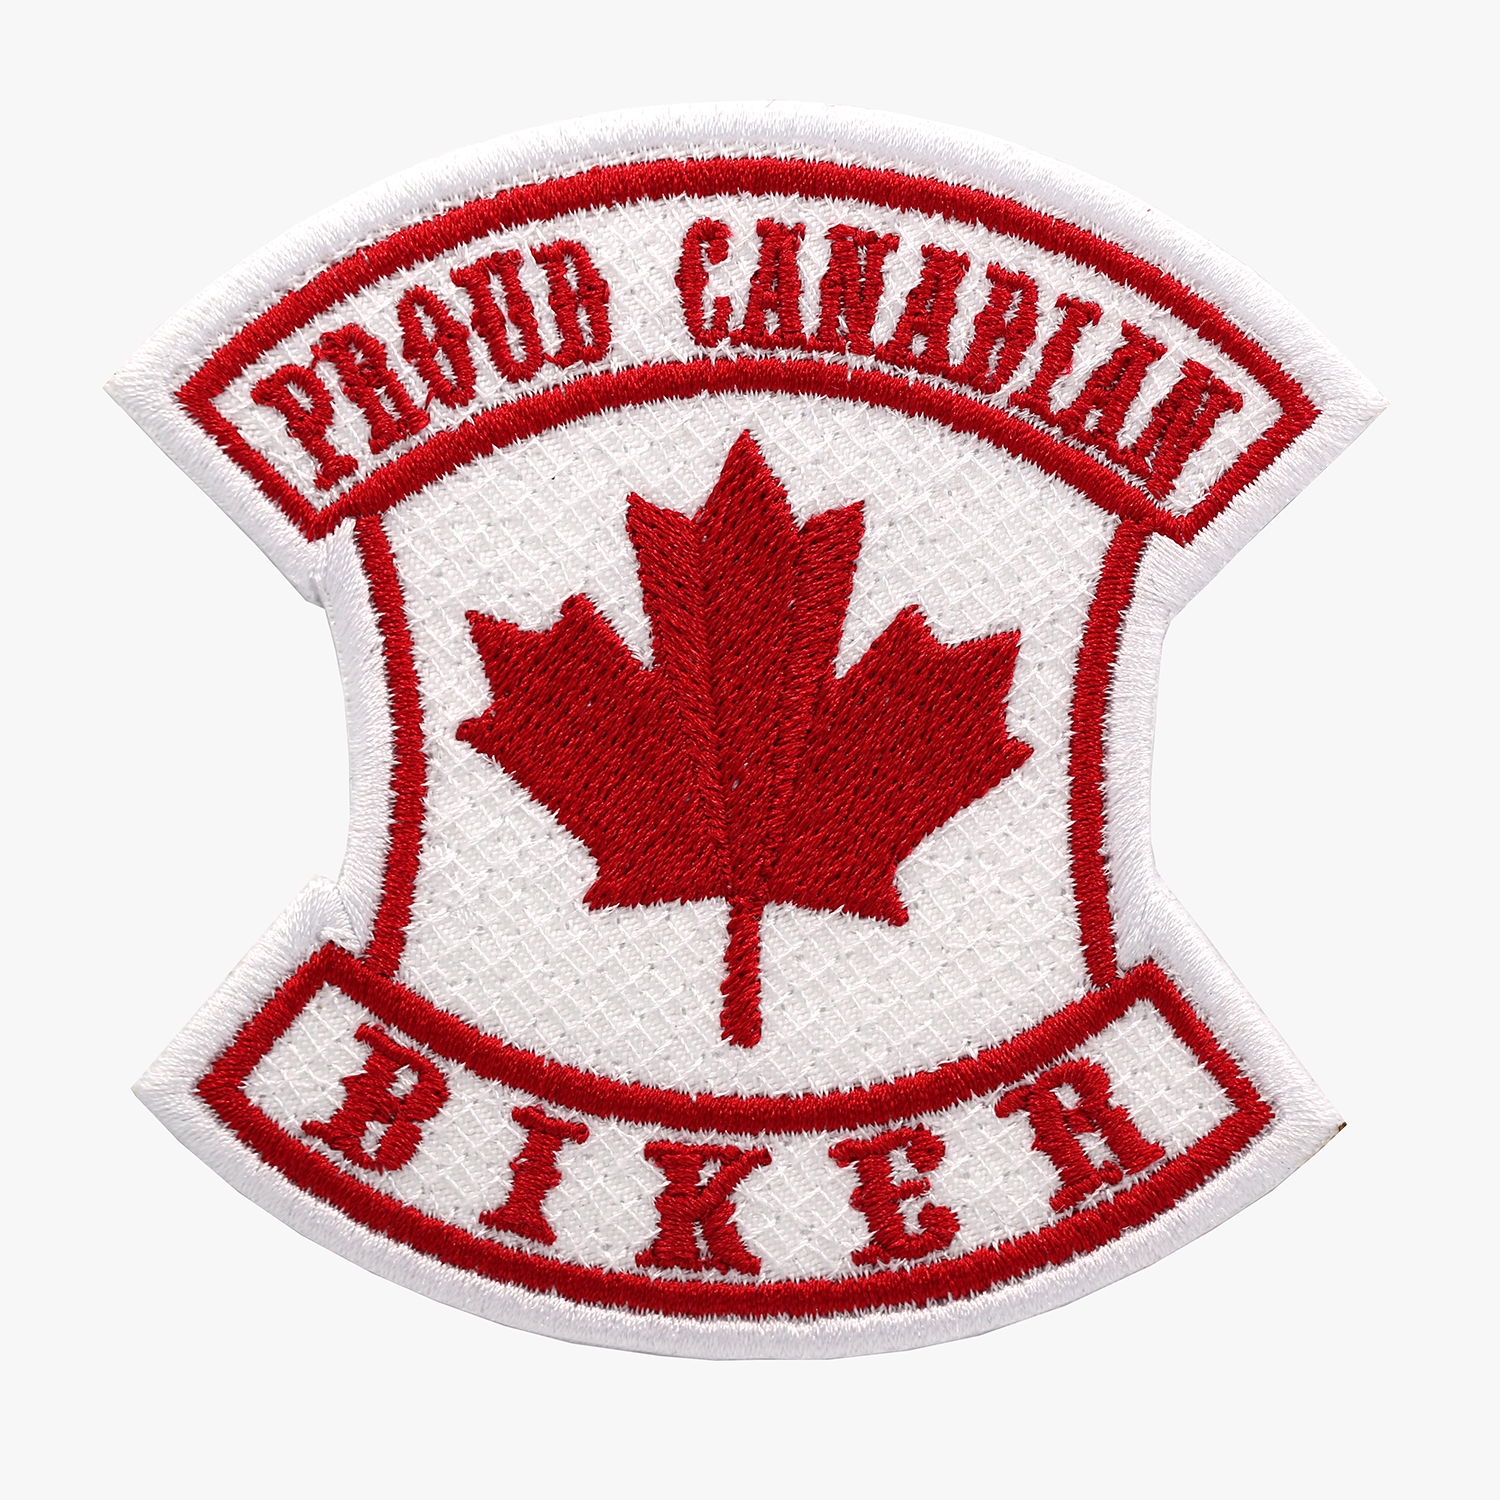 PROUD CANADIAN BIKER Embroidery Patch